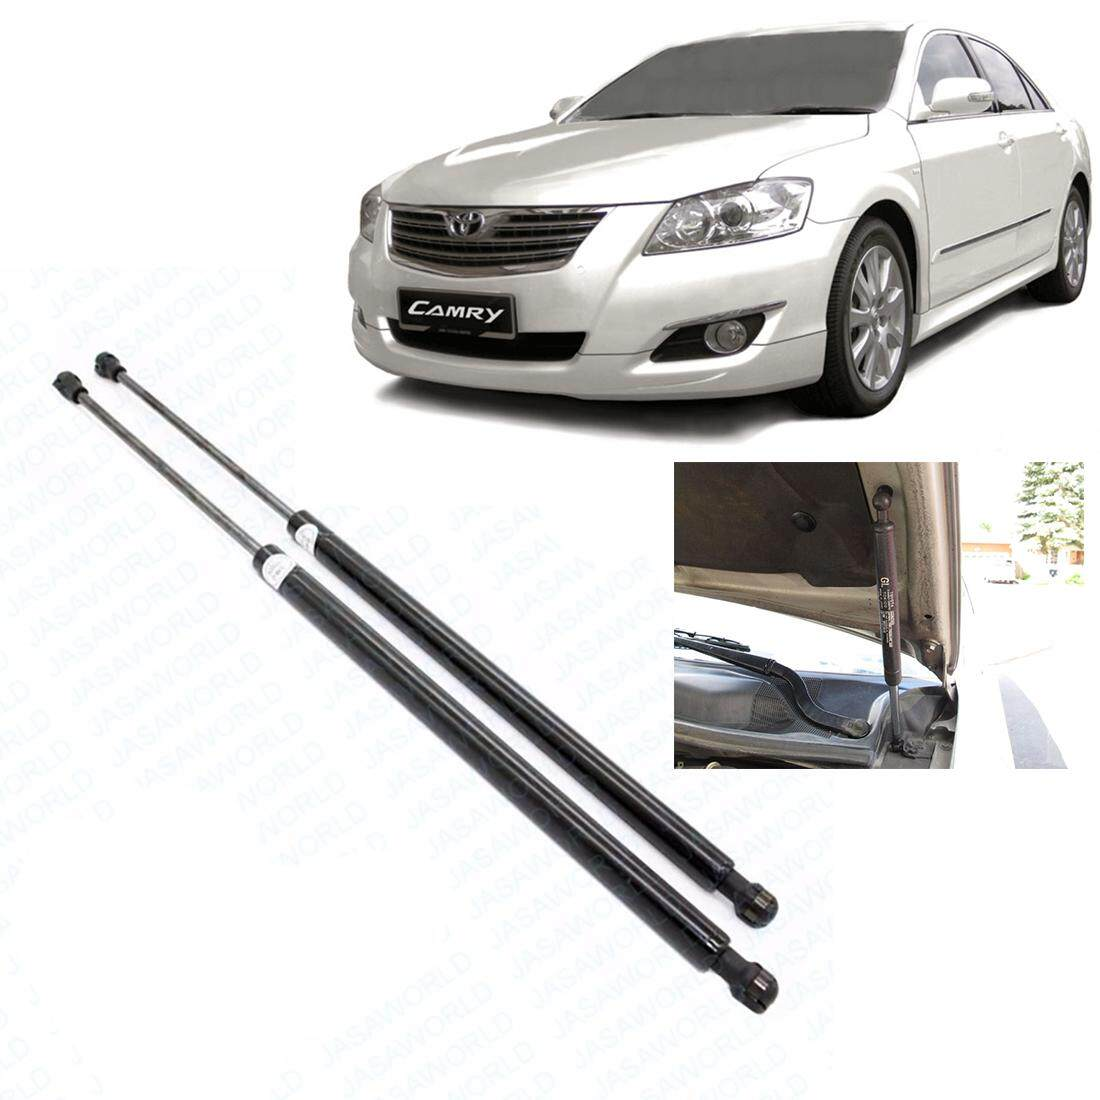 Toyota Auto Parts Spares Price In Malaysia Best 2001 Corolla Fuel Filter Camry Acv40 Year06 12 Front Hood Absorber Bonnet